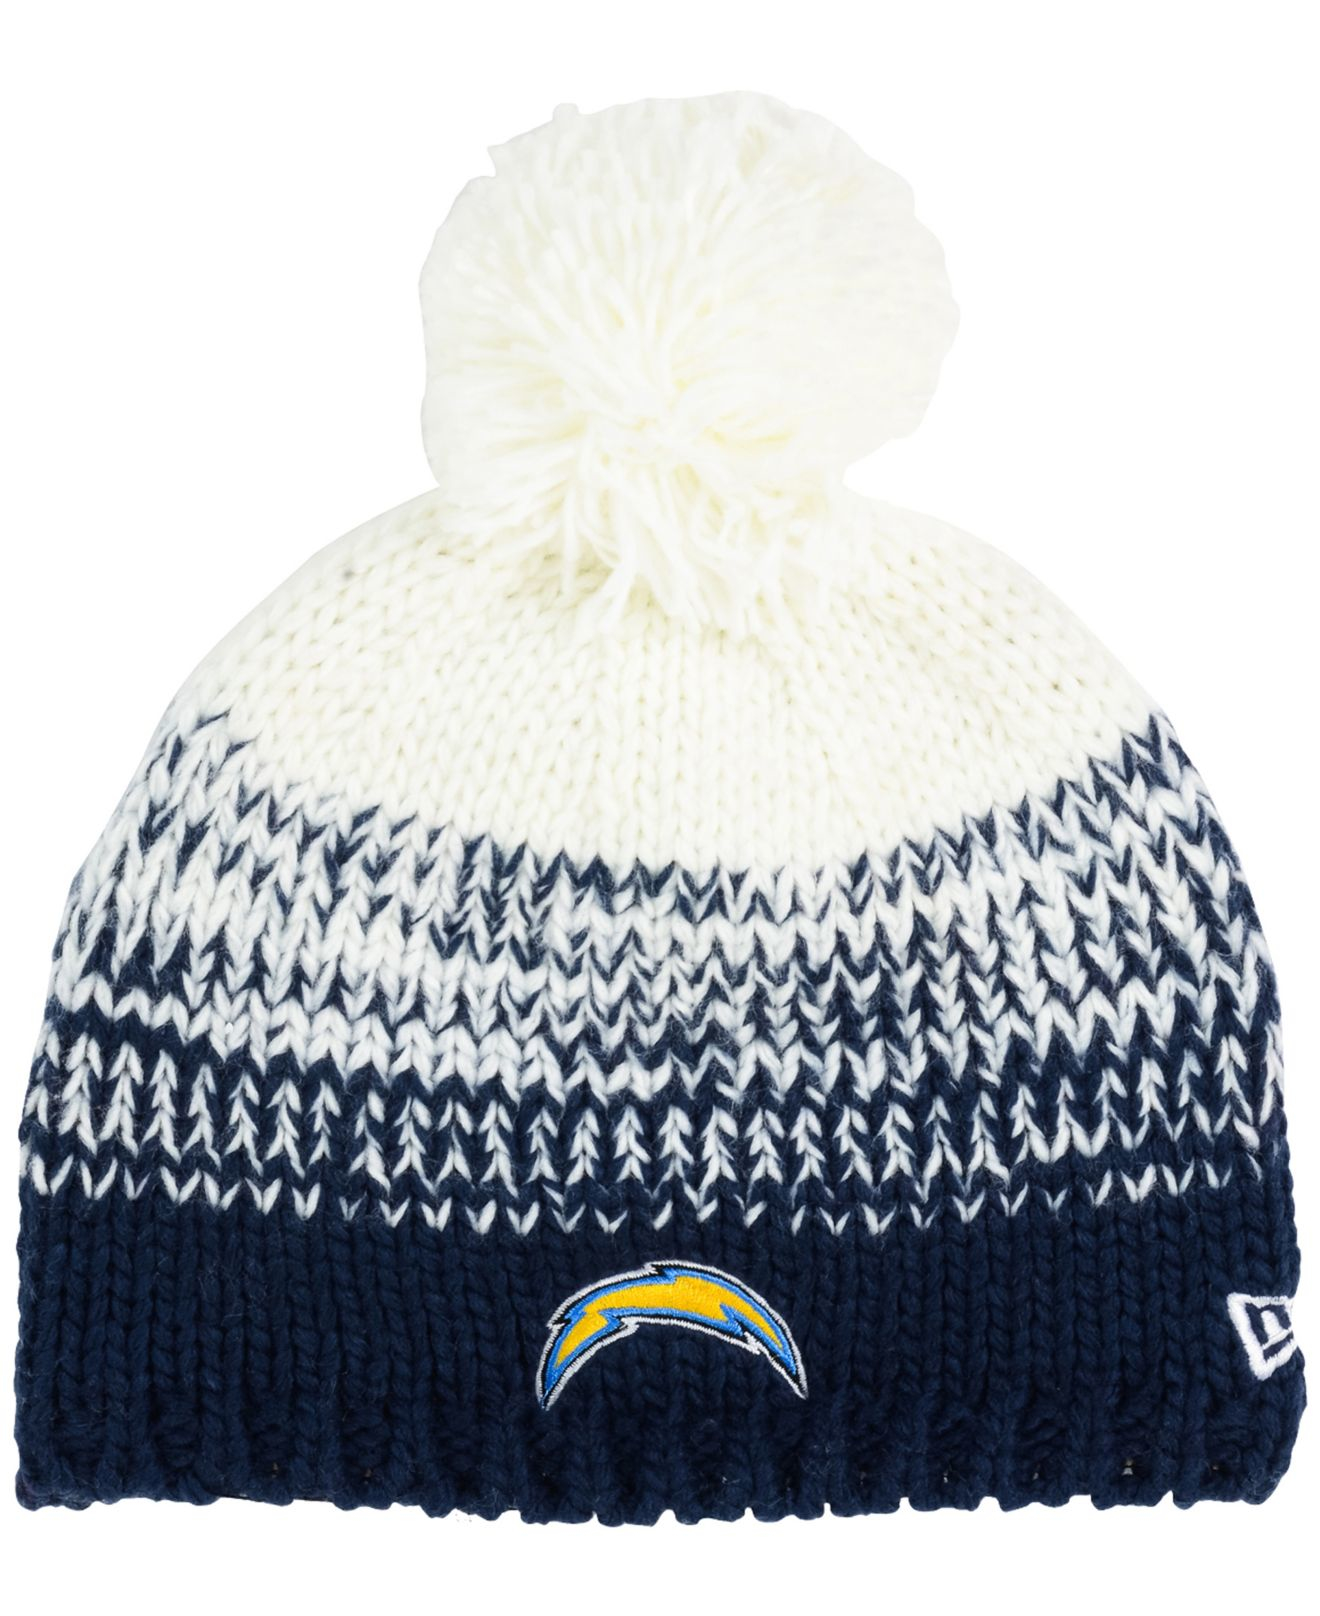 ab888b39f1d8ea Lyst - Ktz Women's San Diego Chargers Polar Dust Knit Hat in Blue